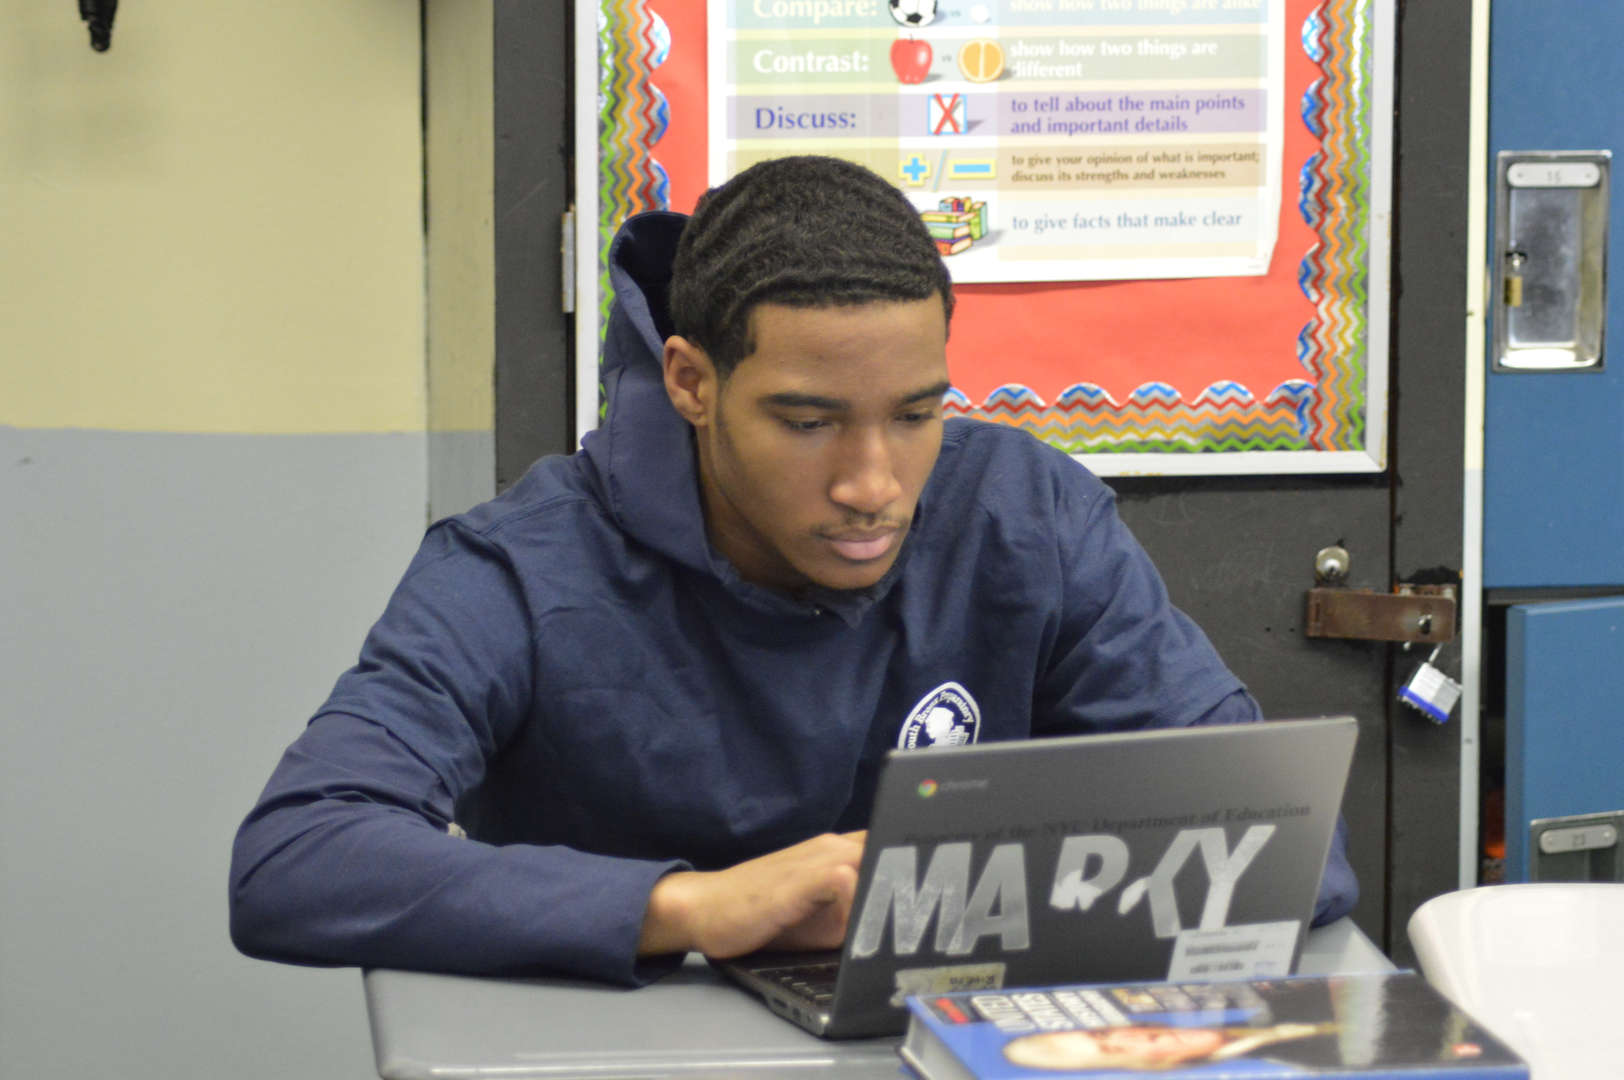 South Bronx Preparatory student works on laptop